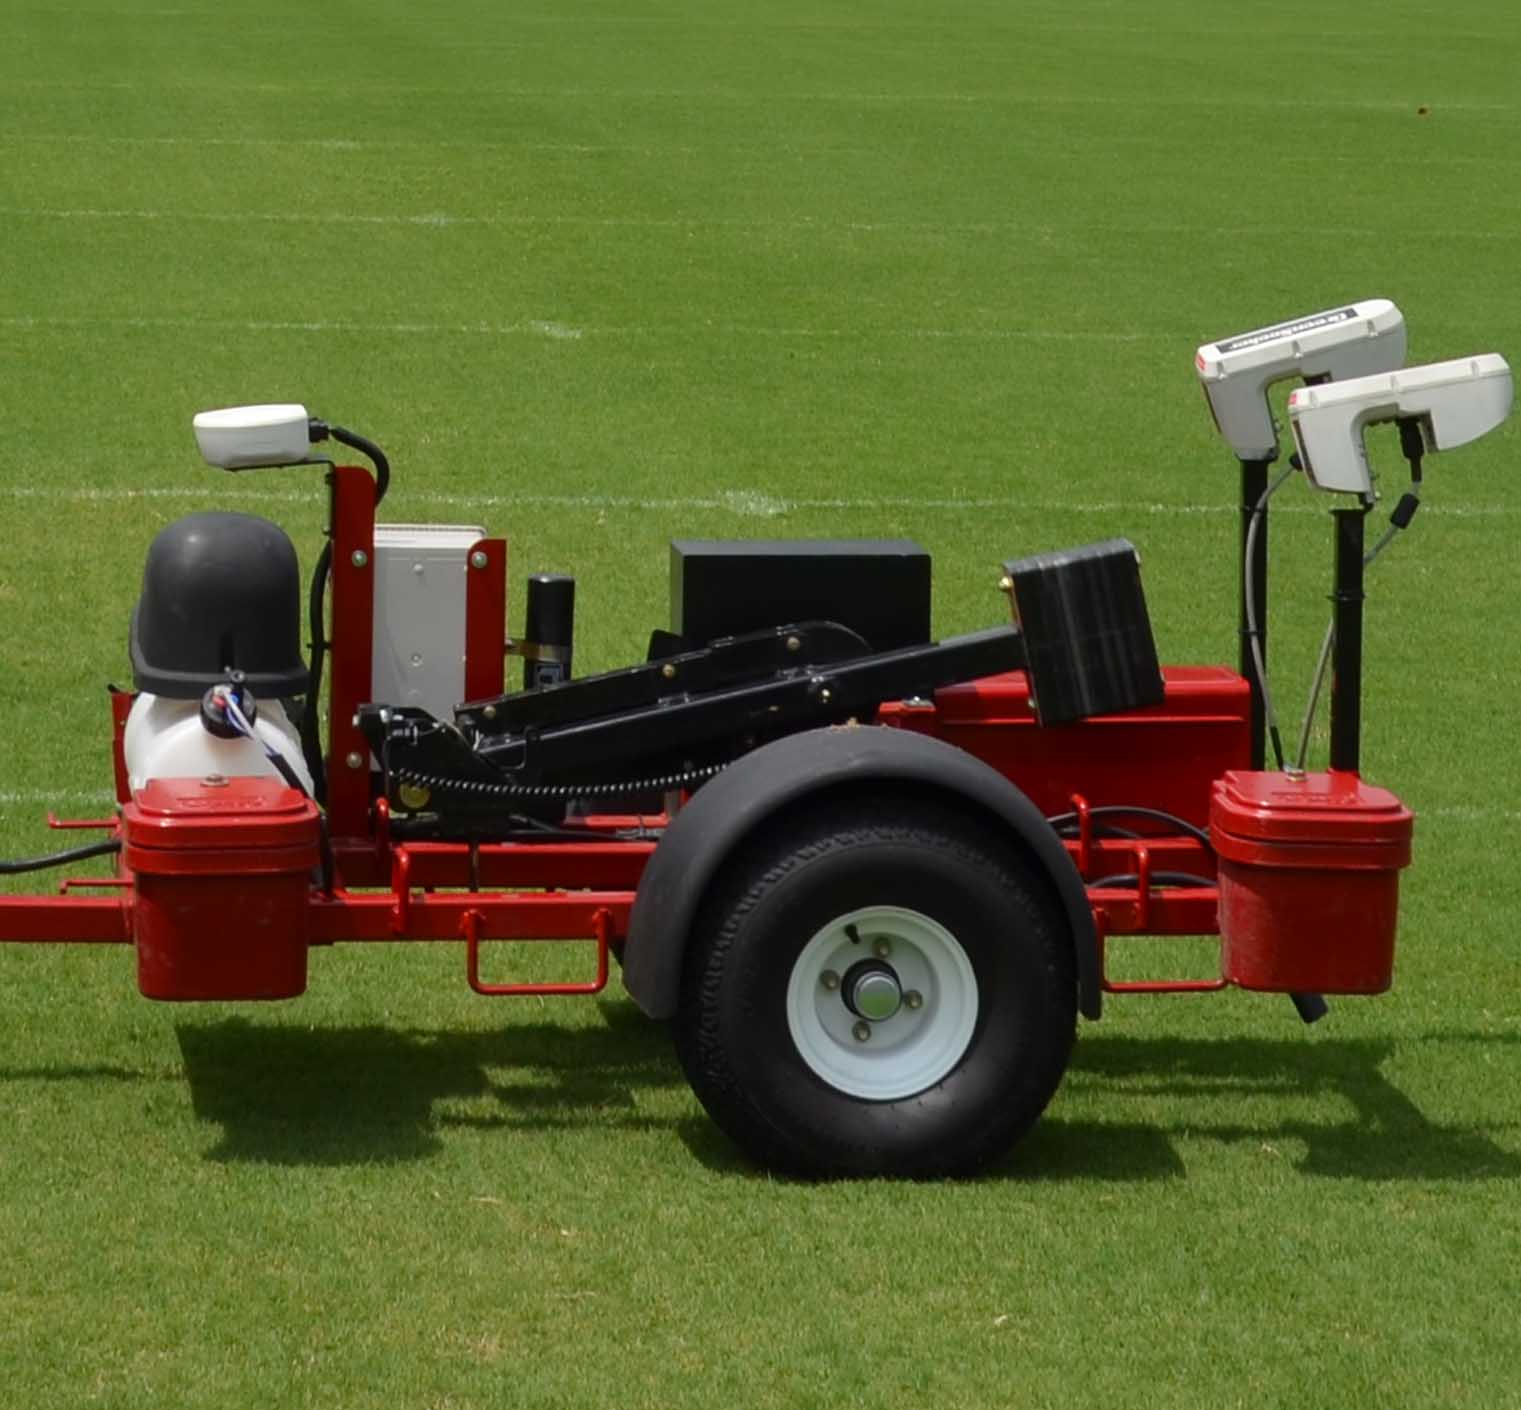 UGA graduate student Chase Straw is working with Associate Professor of Crop and Soil Sciences Gerald Henry to use the ground sensing Toro PS60000 to create more efficient maintenance regimens for turf areas on UGA's Athens Campus.